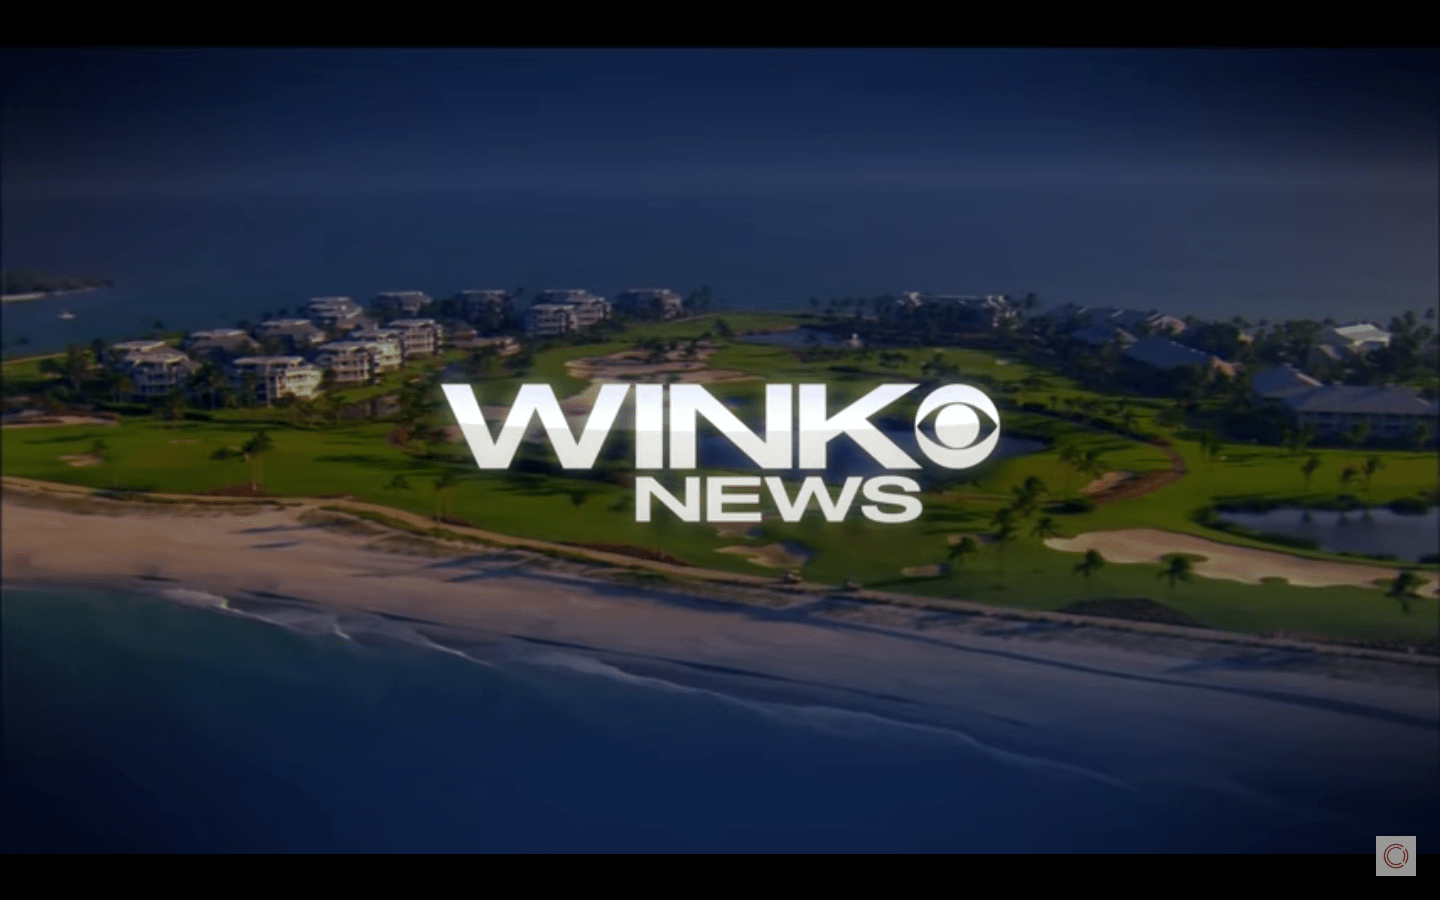 WINK News Ft. Myers – Laundry Project Story